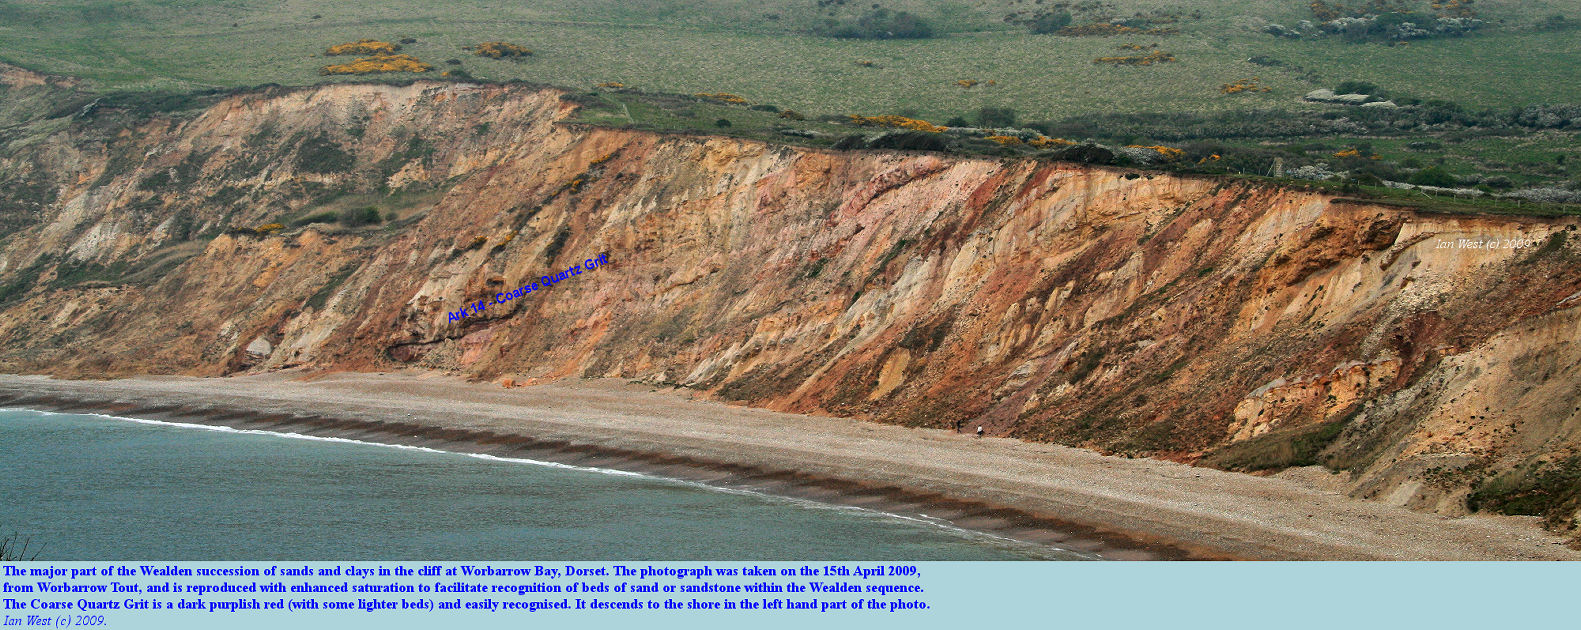 A view of the Wealden strata in the cliffs of Worbarrow Bay, Dorset, as seen from Worbarrow Tout on the 15th April 2009, but shown with enhanced saturation